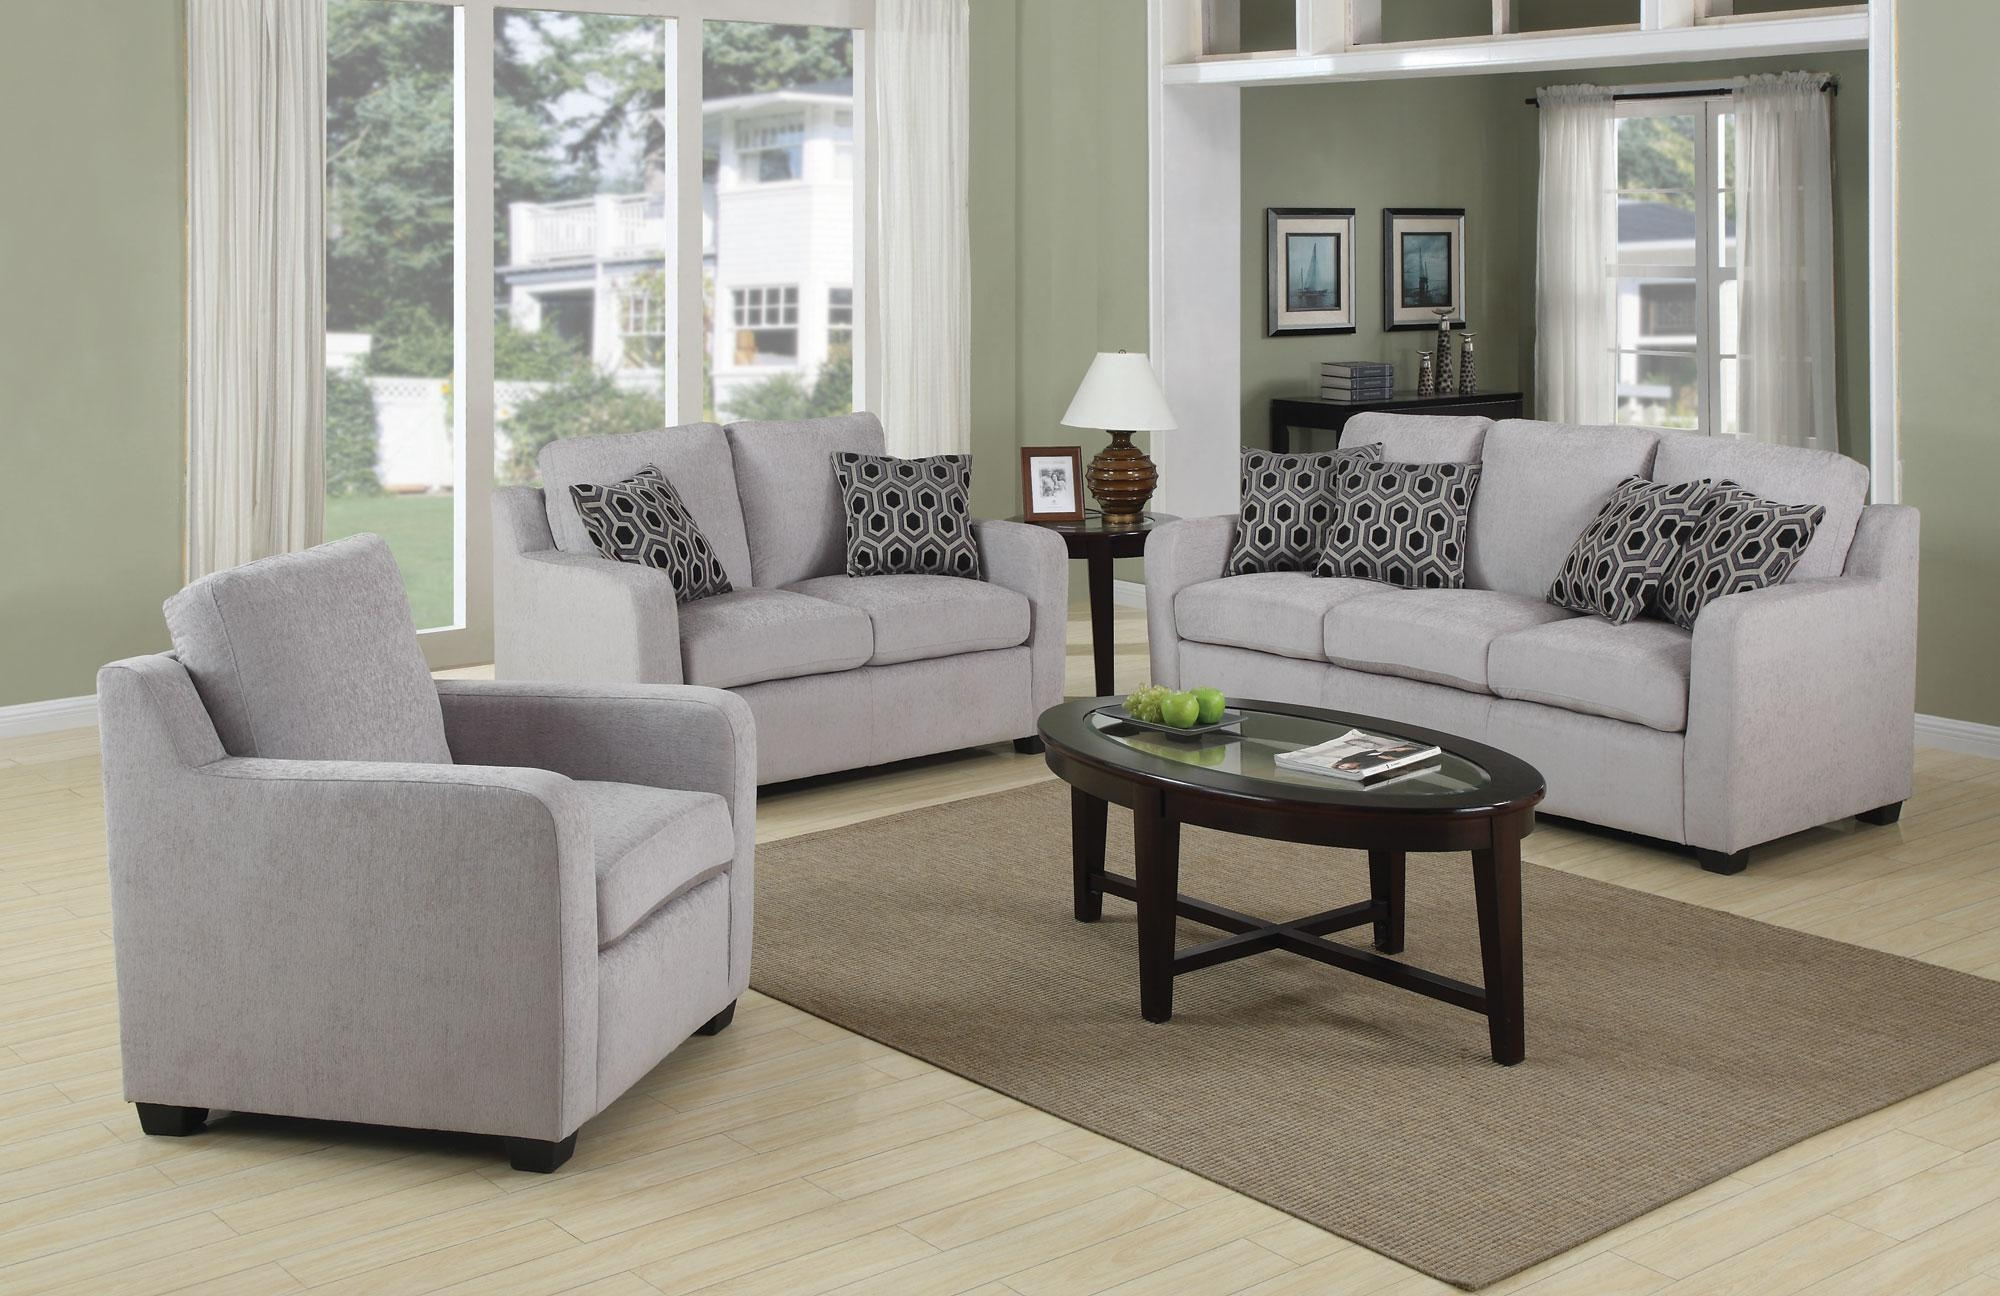 20 Ideas Of Cheap Sofas Houston Sofa Ideas